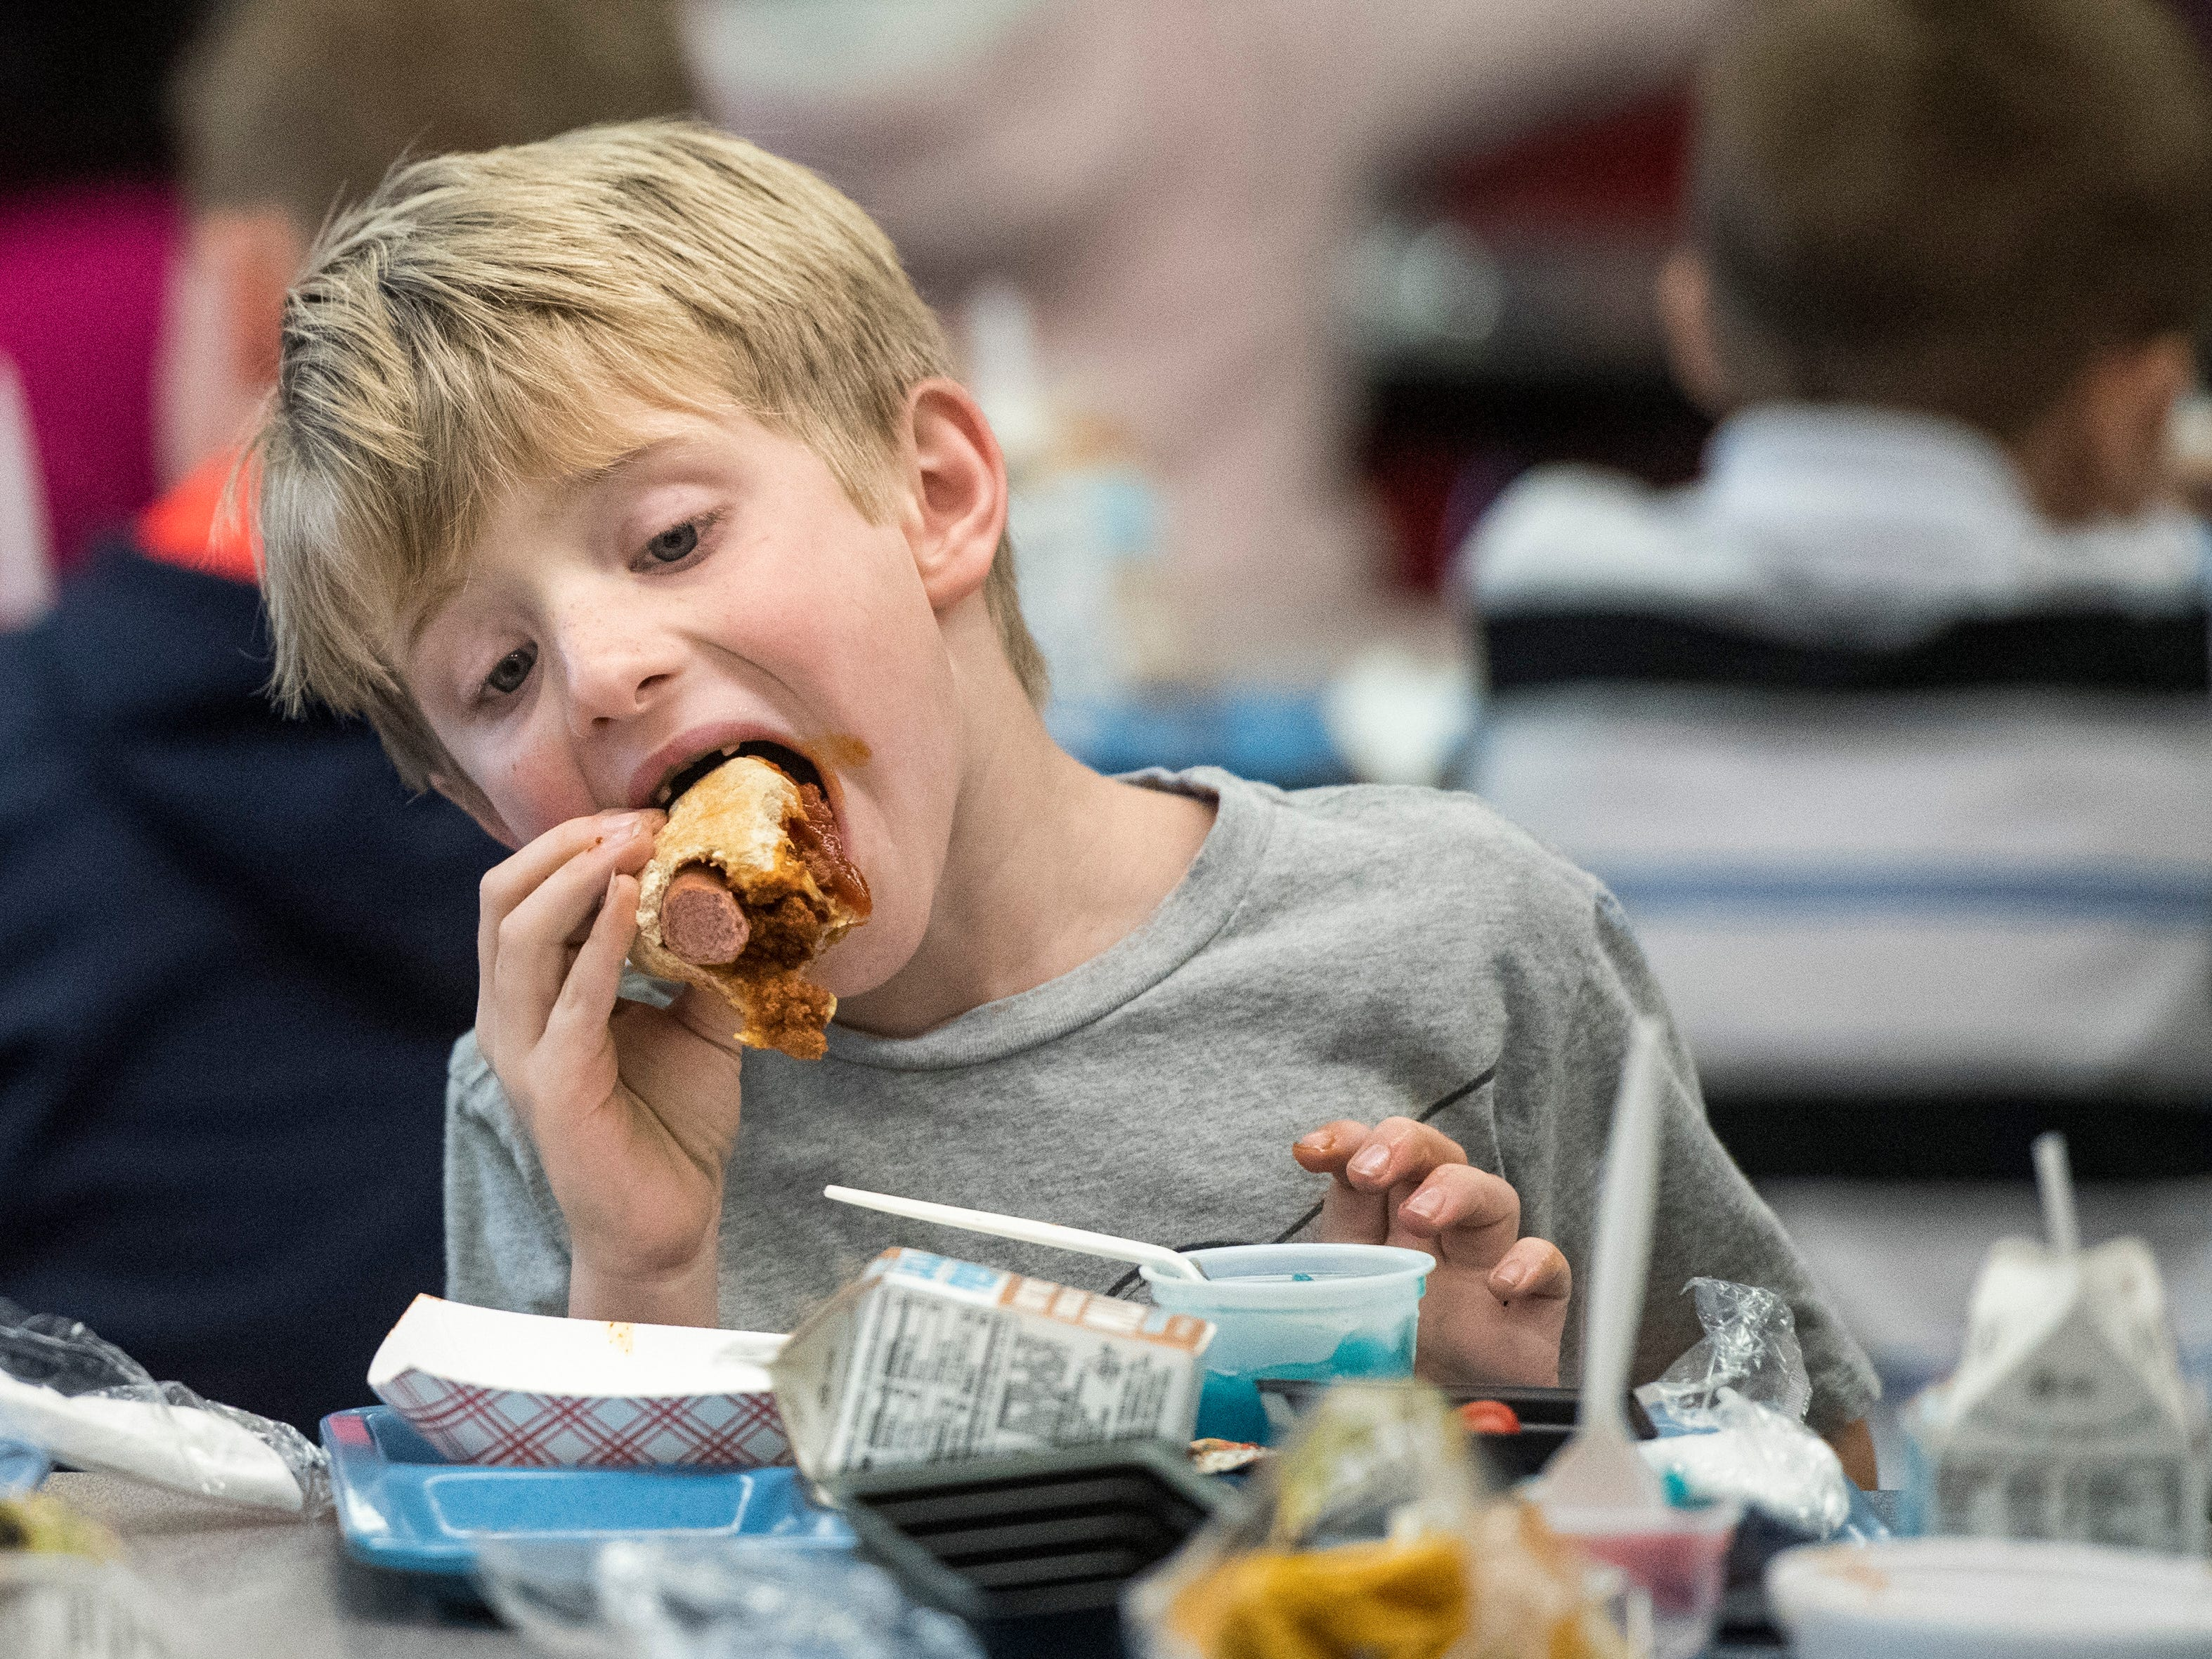 First-grader Stephen Martin chomps down on a chili dog while eating lunch at Hebron Elementary school on Friday, Oct. 19, 2018.